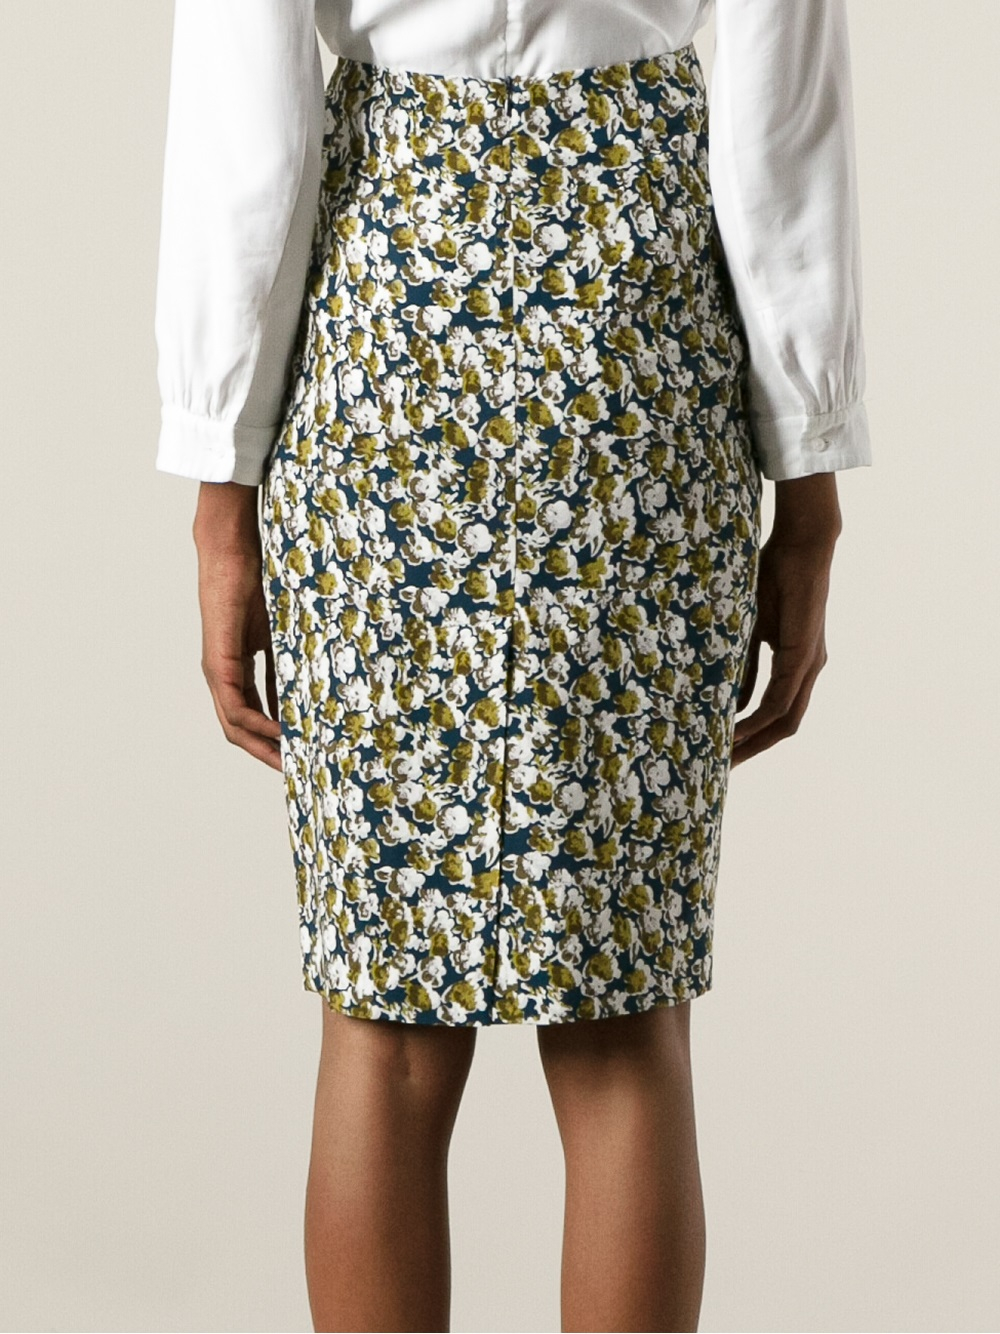 Marni Floral Print Pencil Skirt in Blue | Lyst